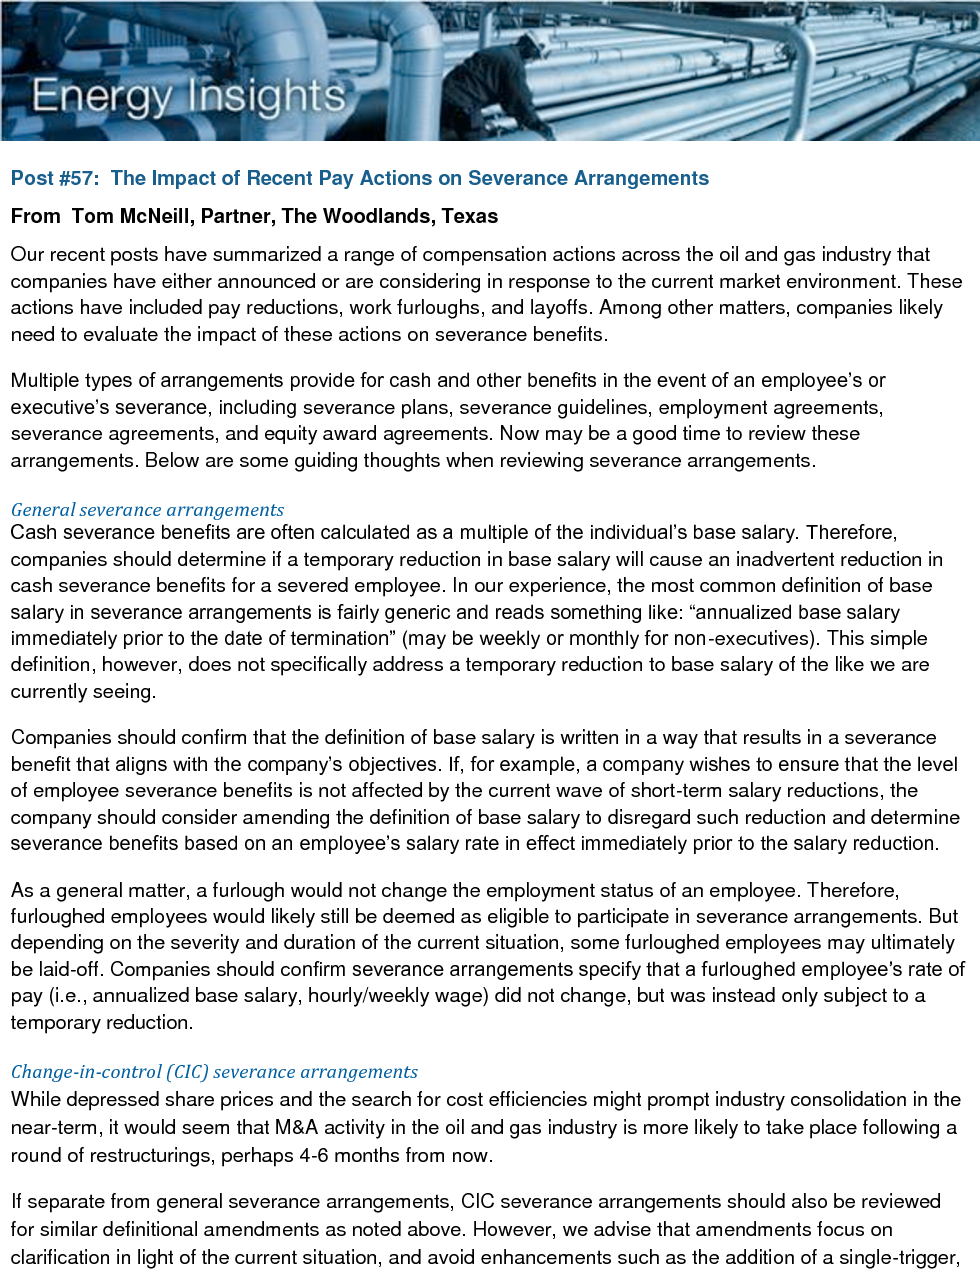 The Impact of Recent Pay Actions on Severance Arrangements (PDF)